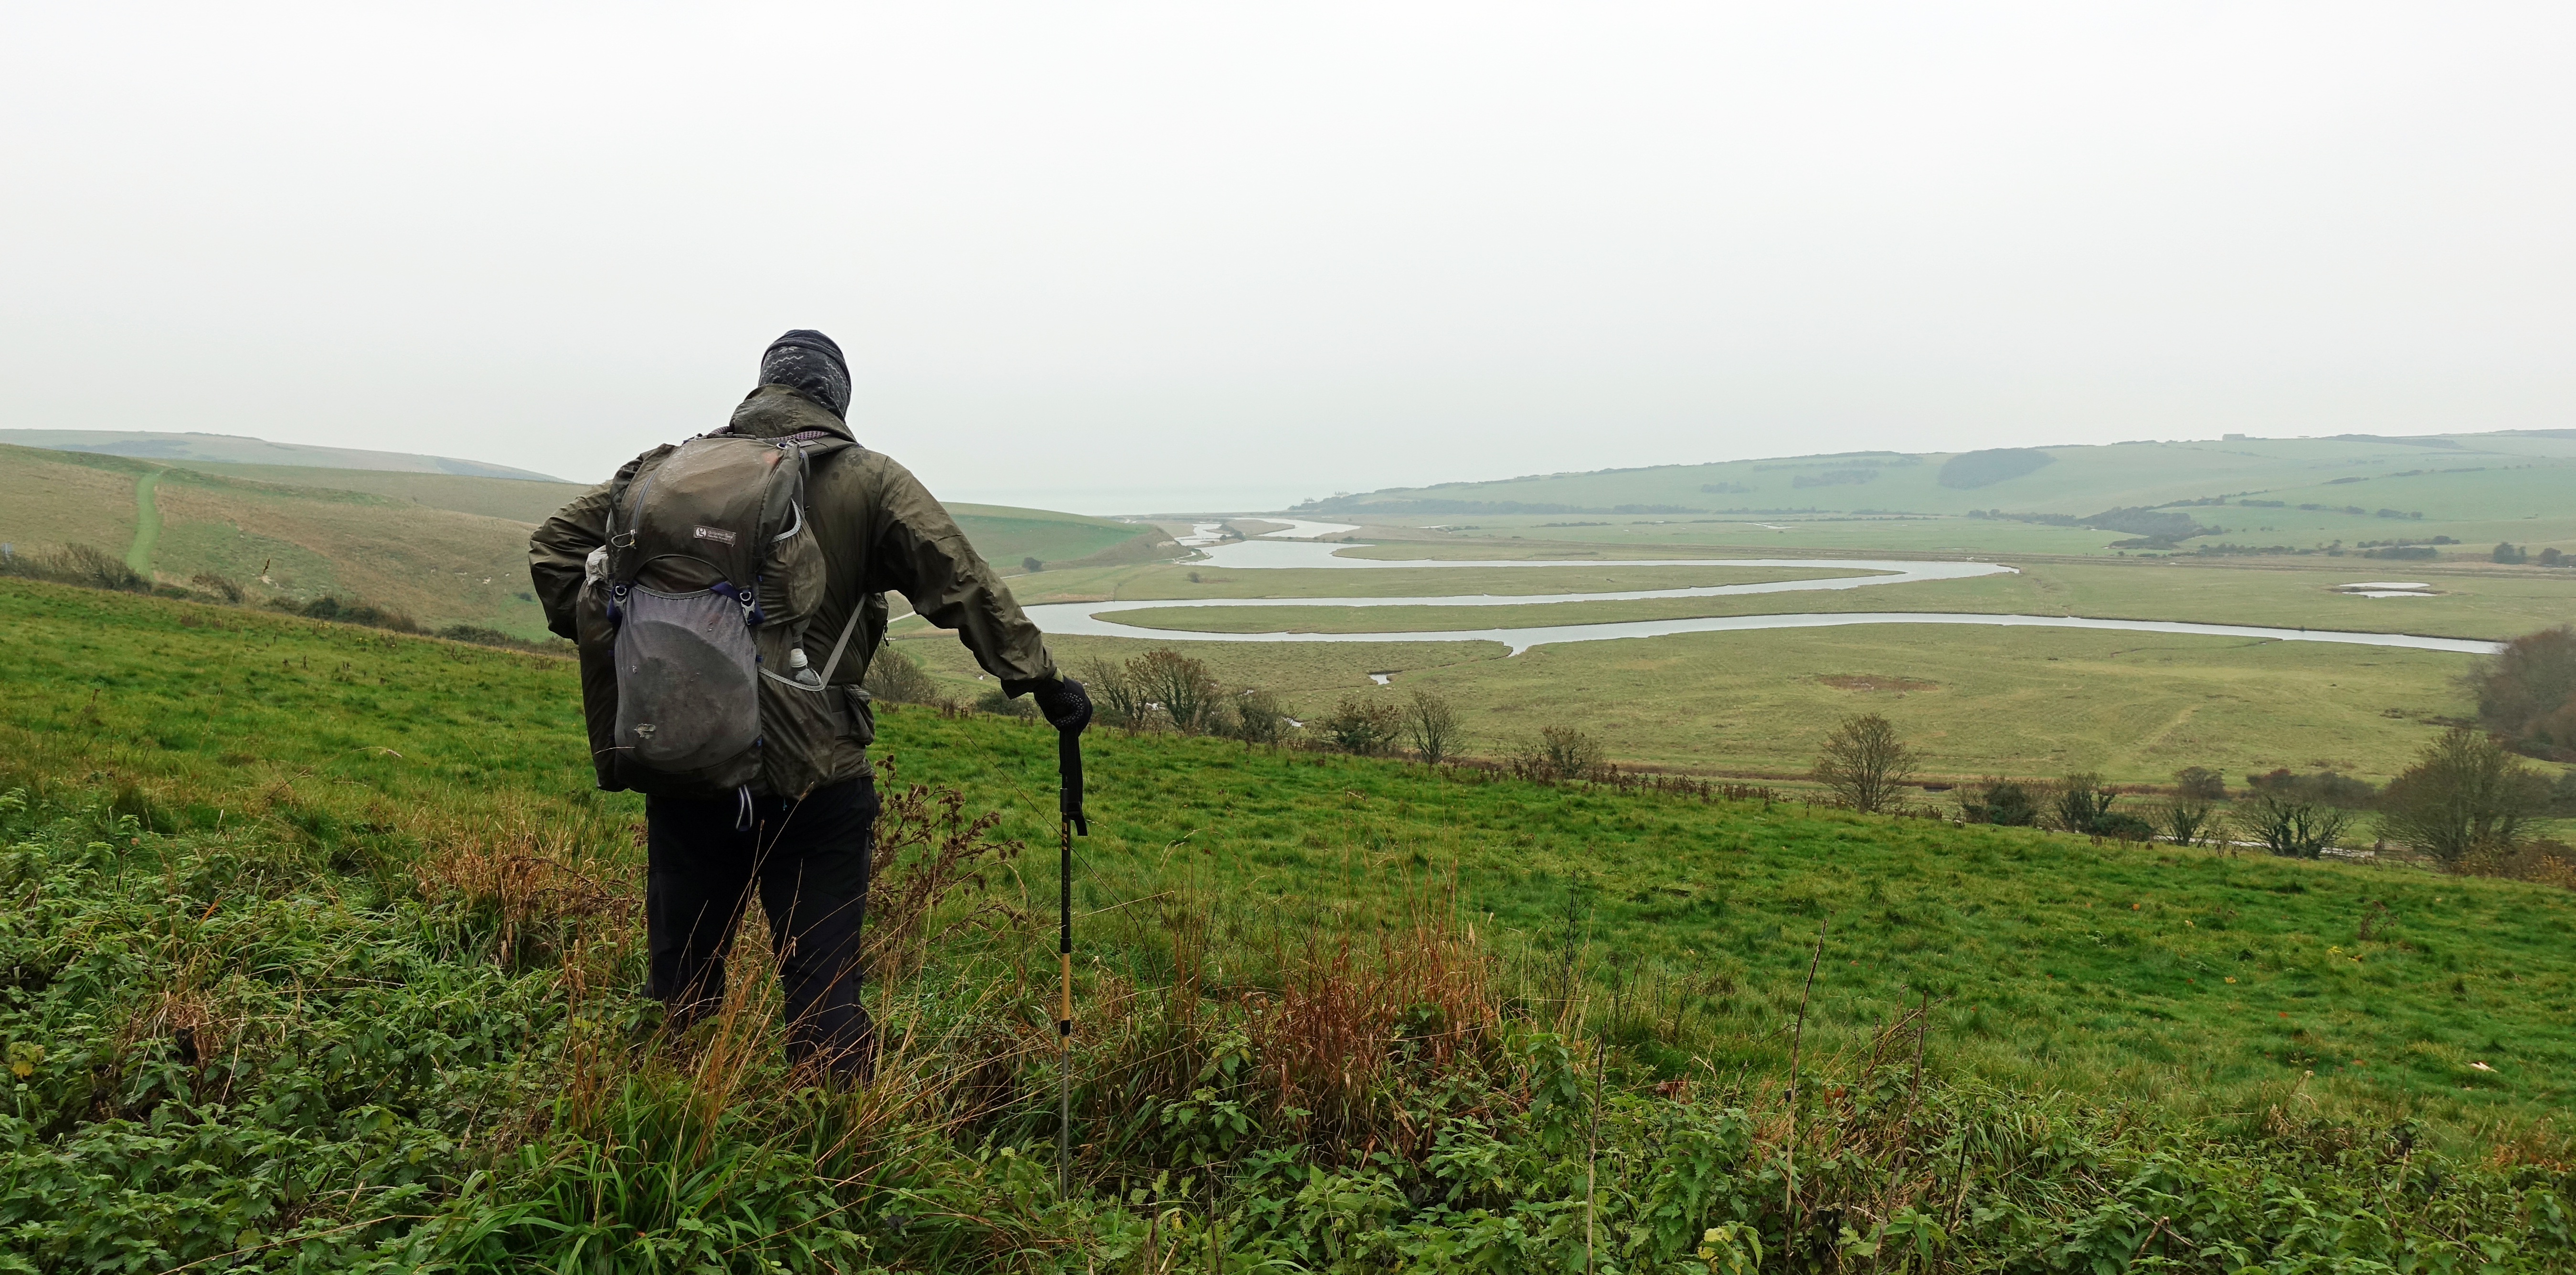 About to descend to the famous winding meanders of the Cuckmere River